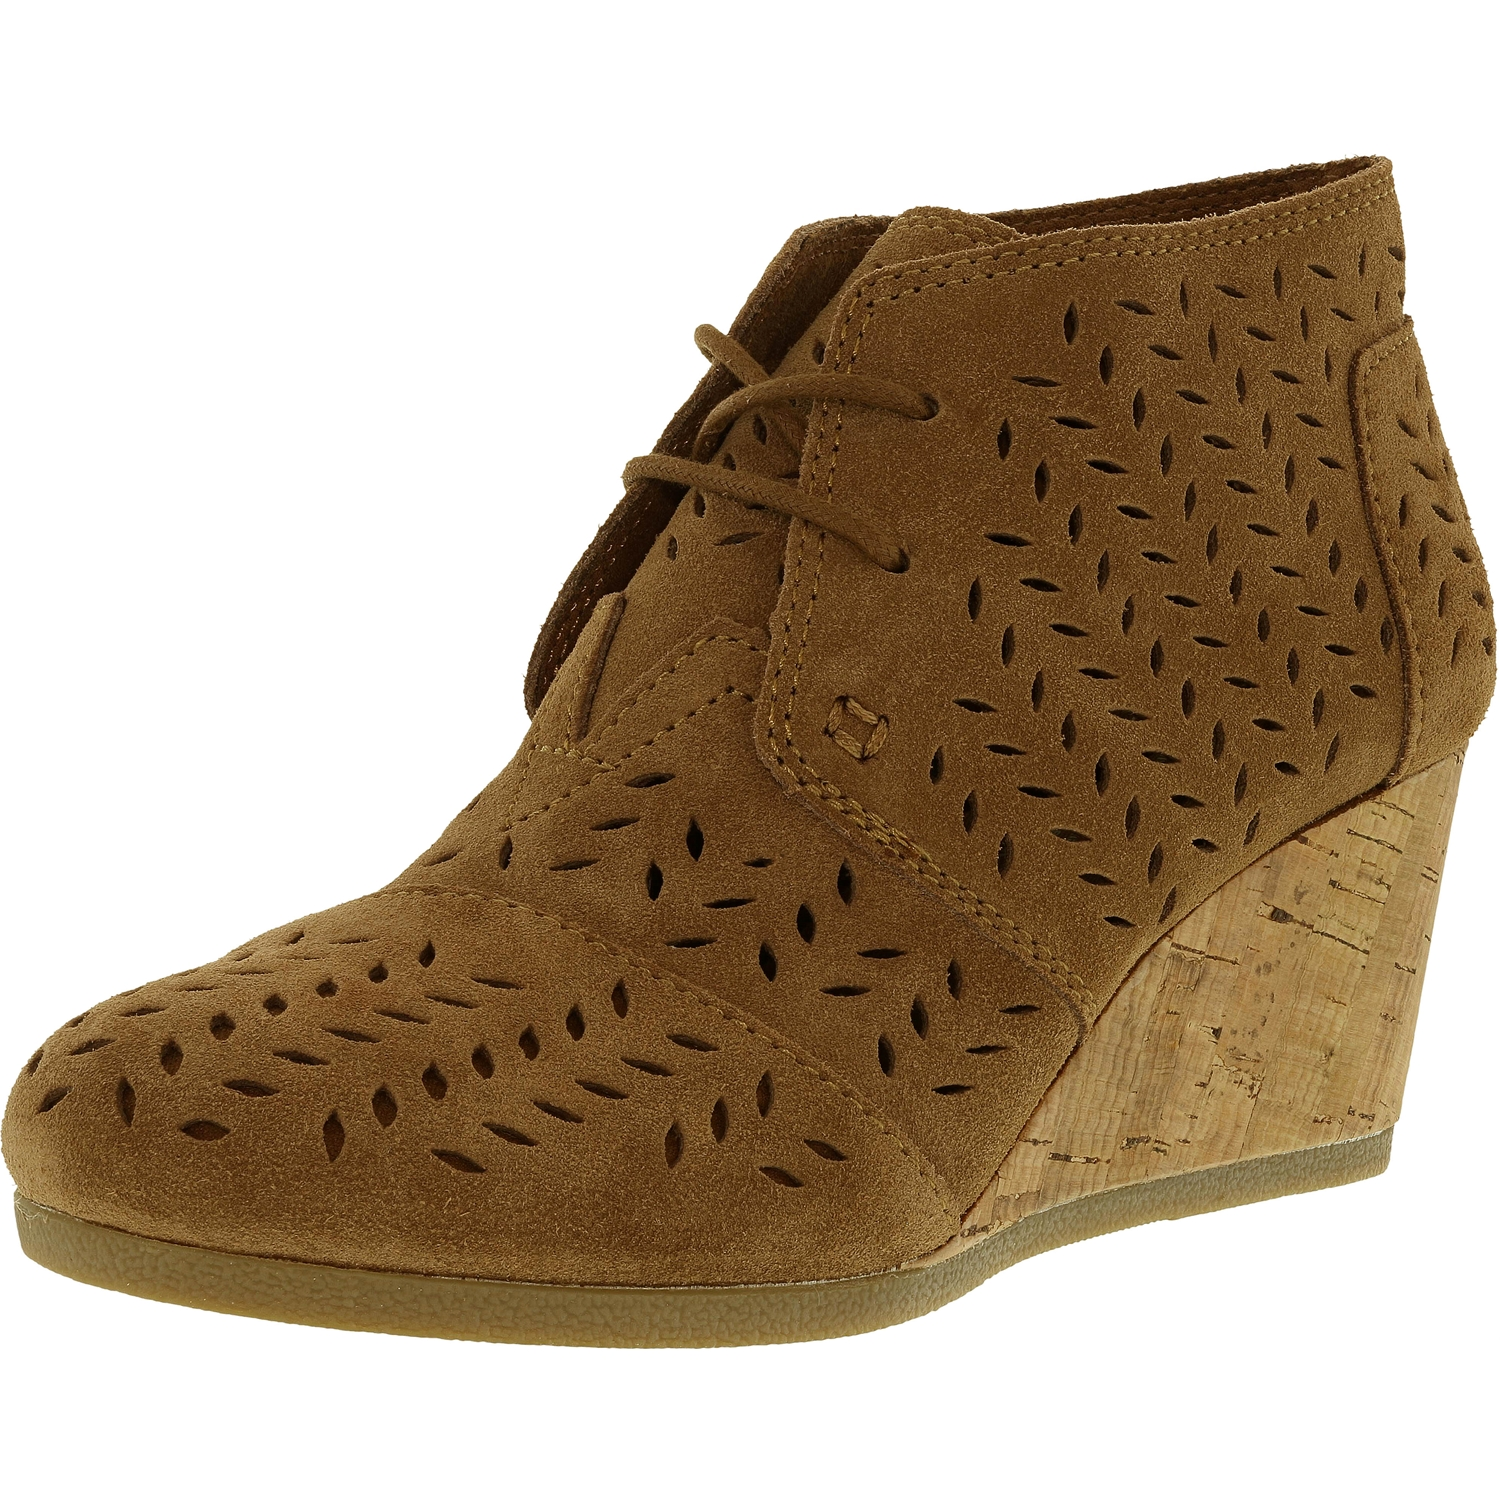 267bcfa6ee85 Toms Women s Desert Wedge Suede Chocolate Brown Ankle-High Pump ...